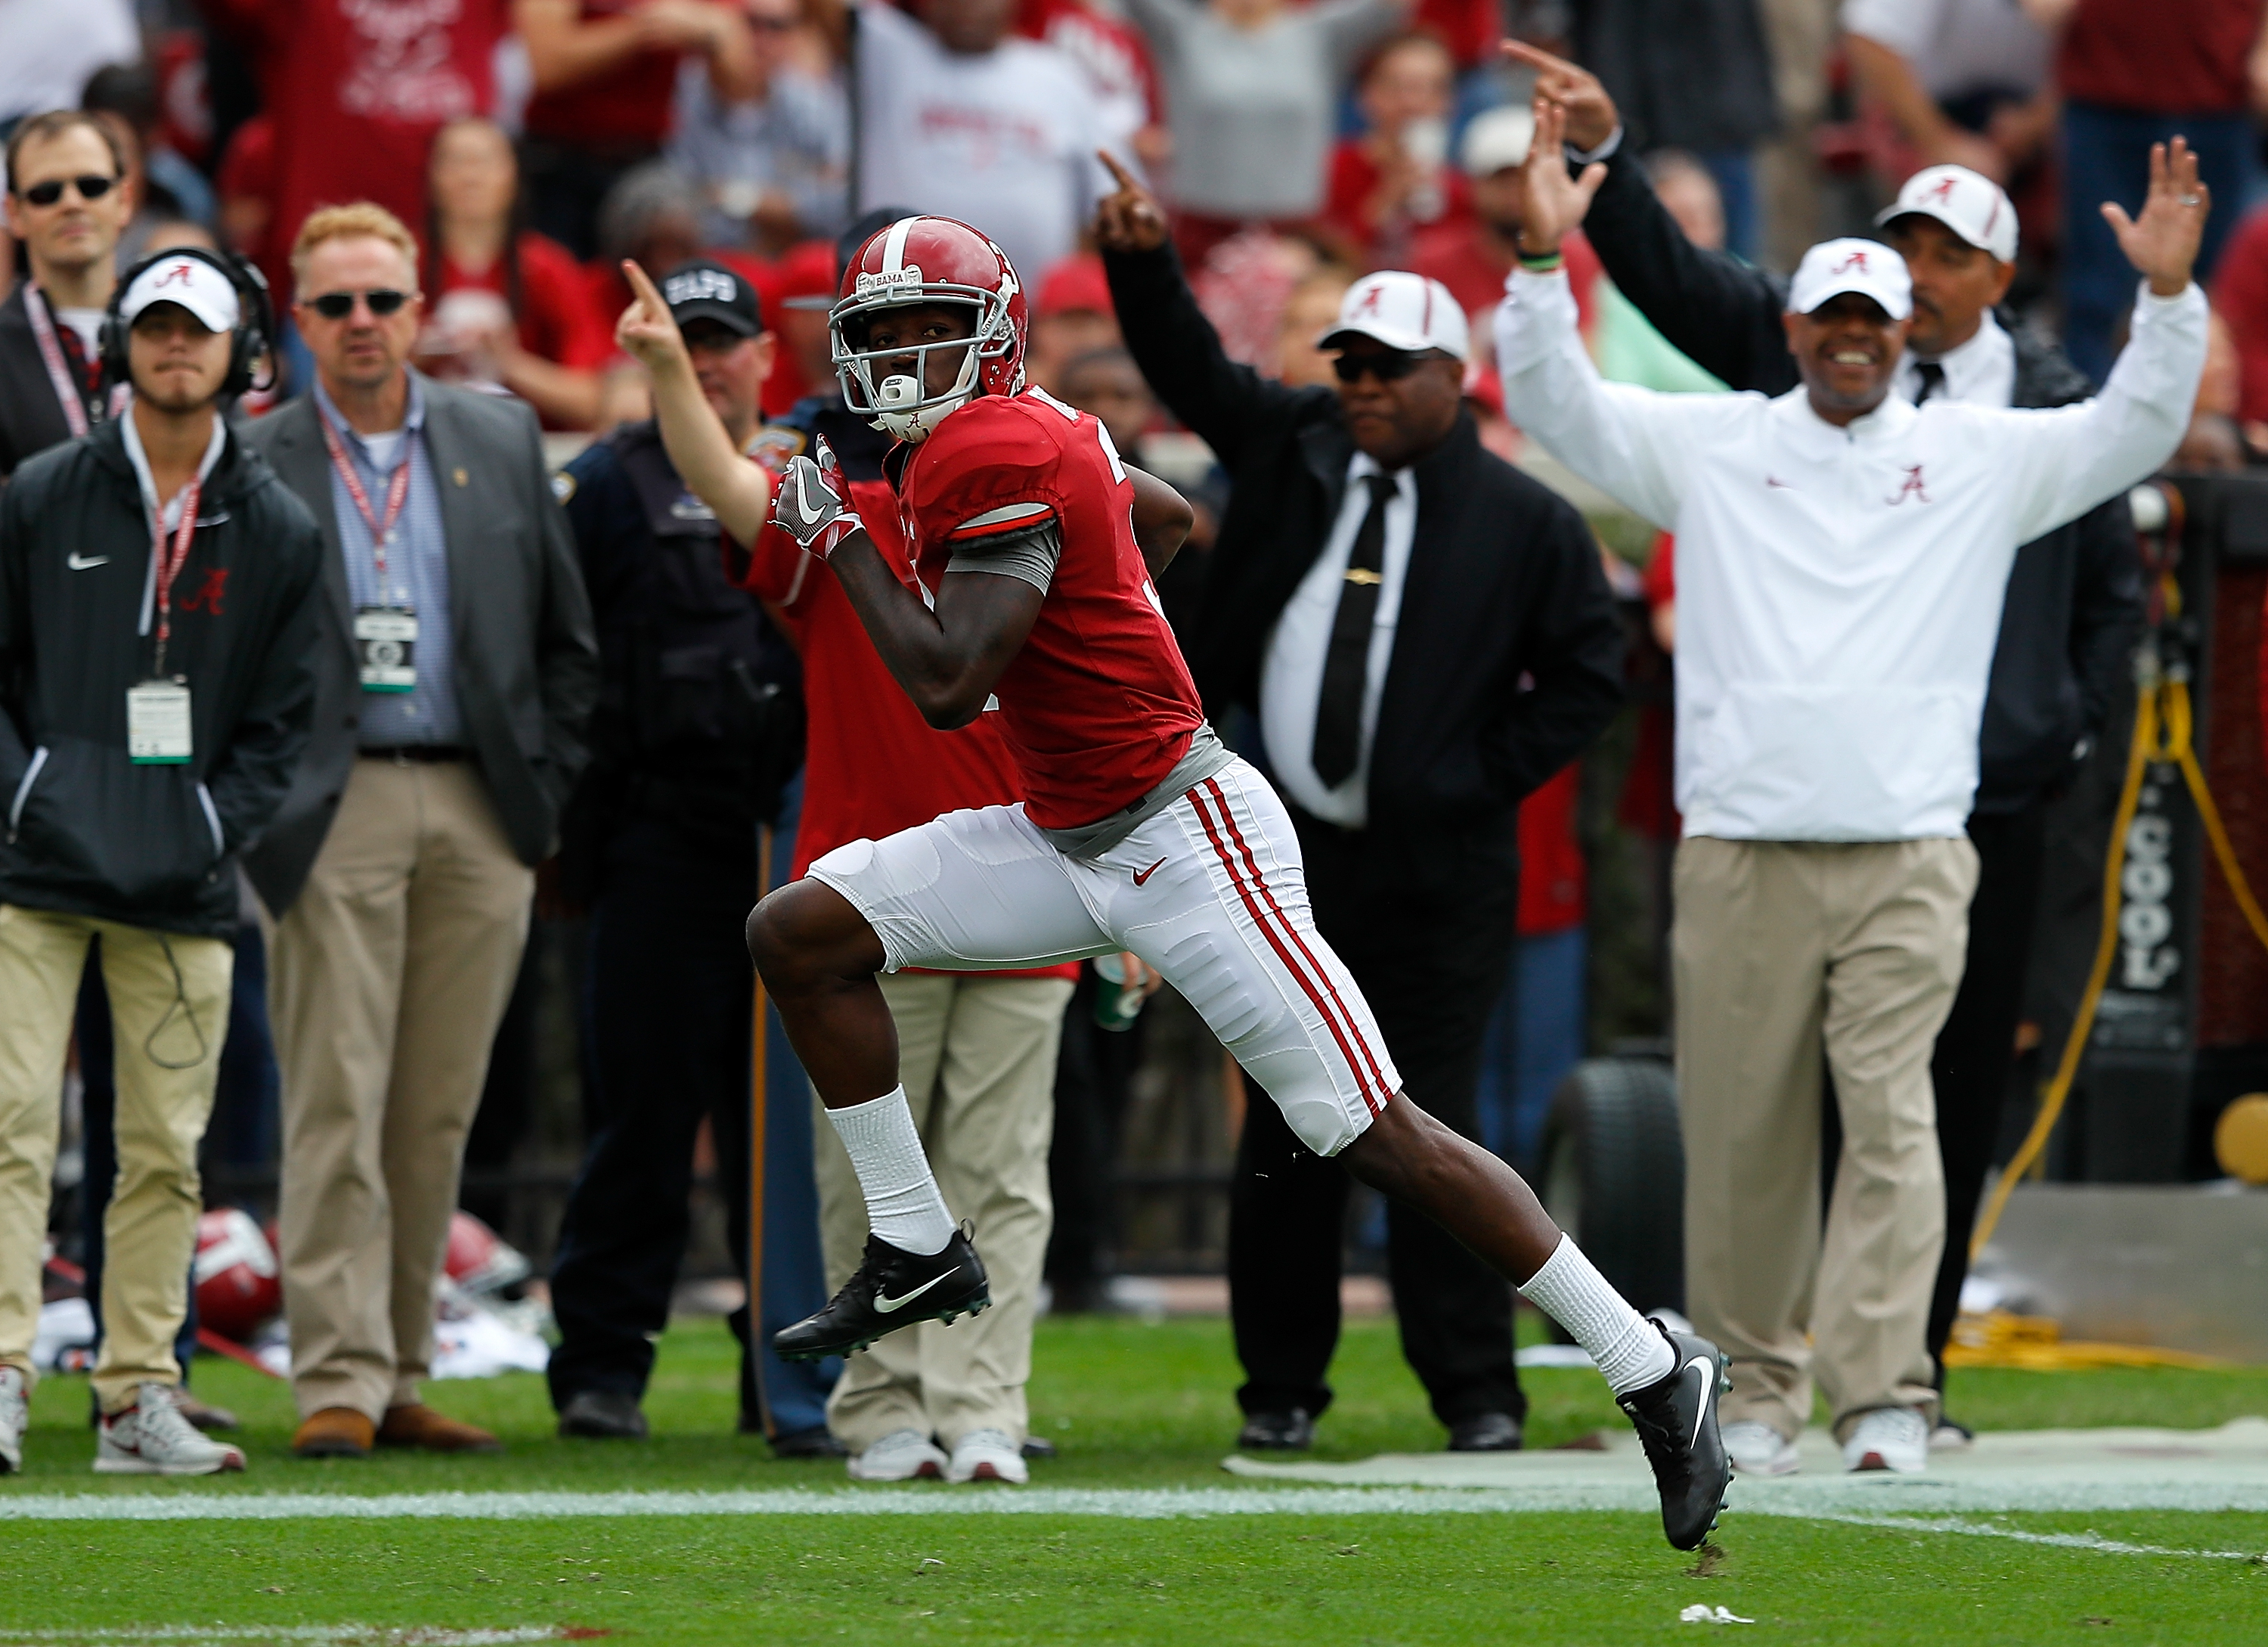 Alabama Football Calvin Ridley Is Top Wr In The Draft Despite Tide Stats